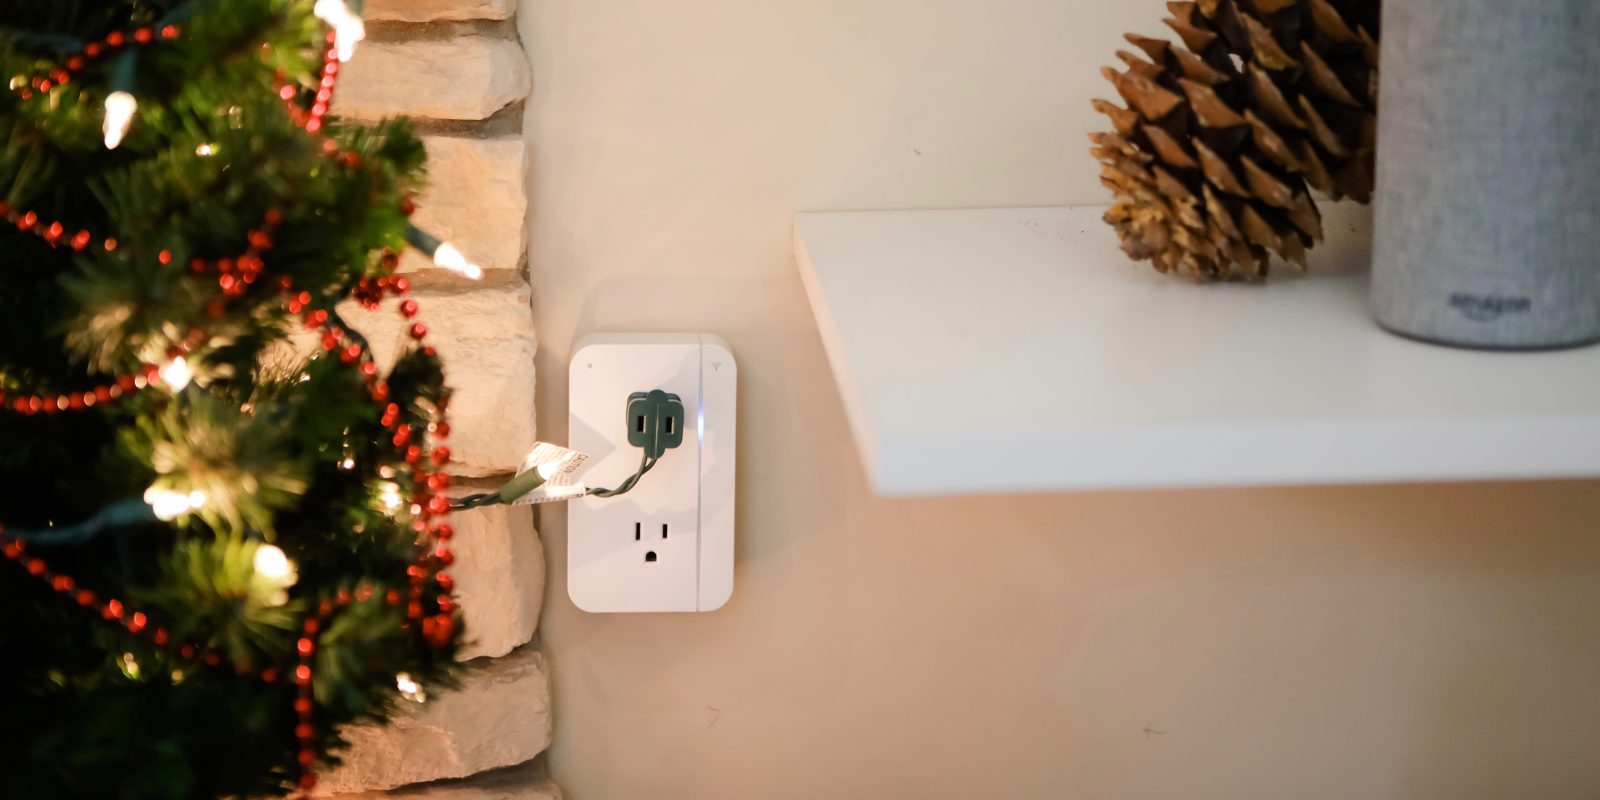 ConnectSense Unveils HomeKit-enabled Dual Smart Plug with Energy Monitoring and More